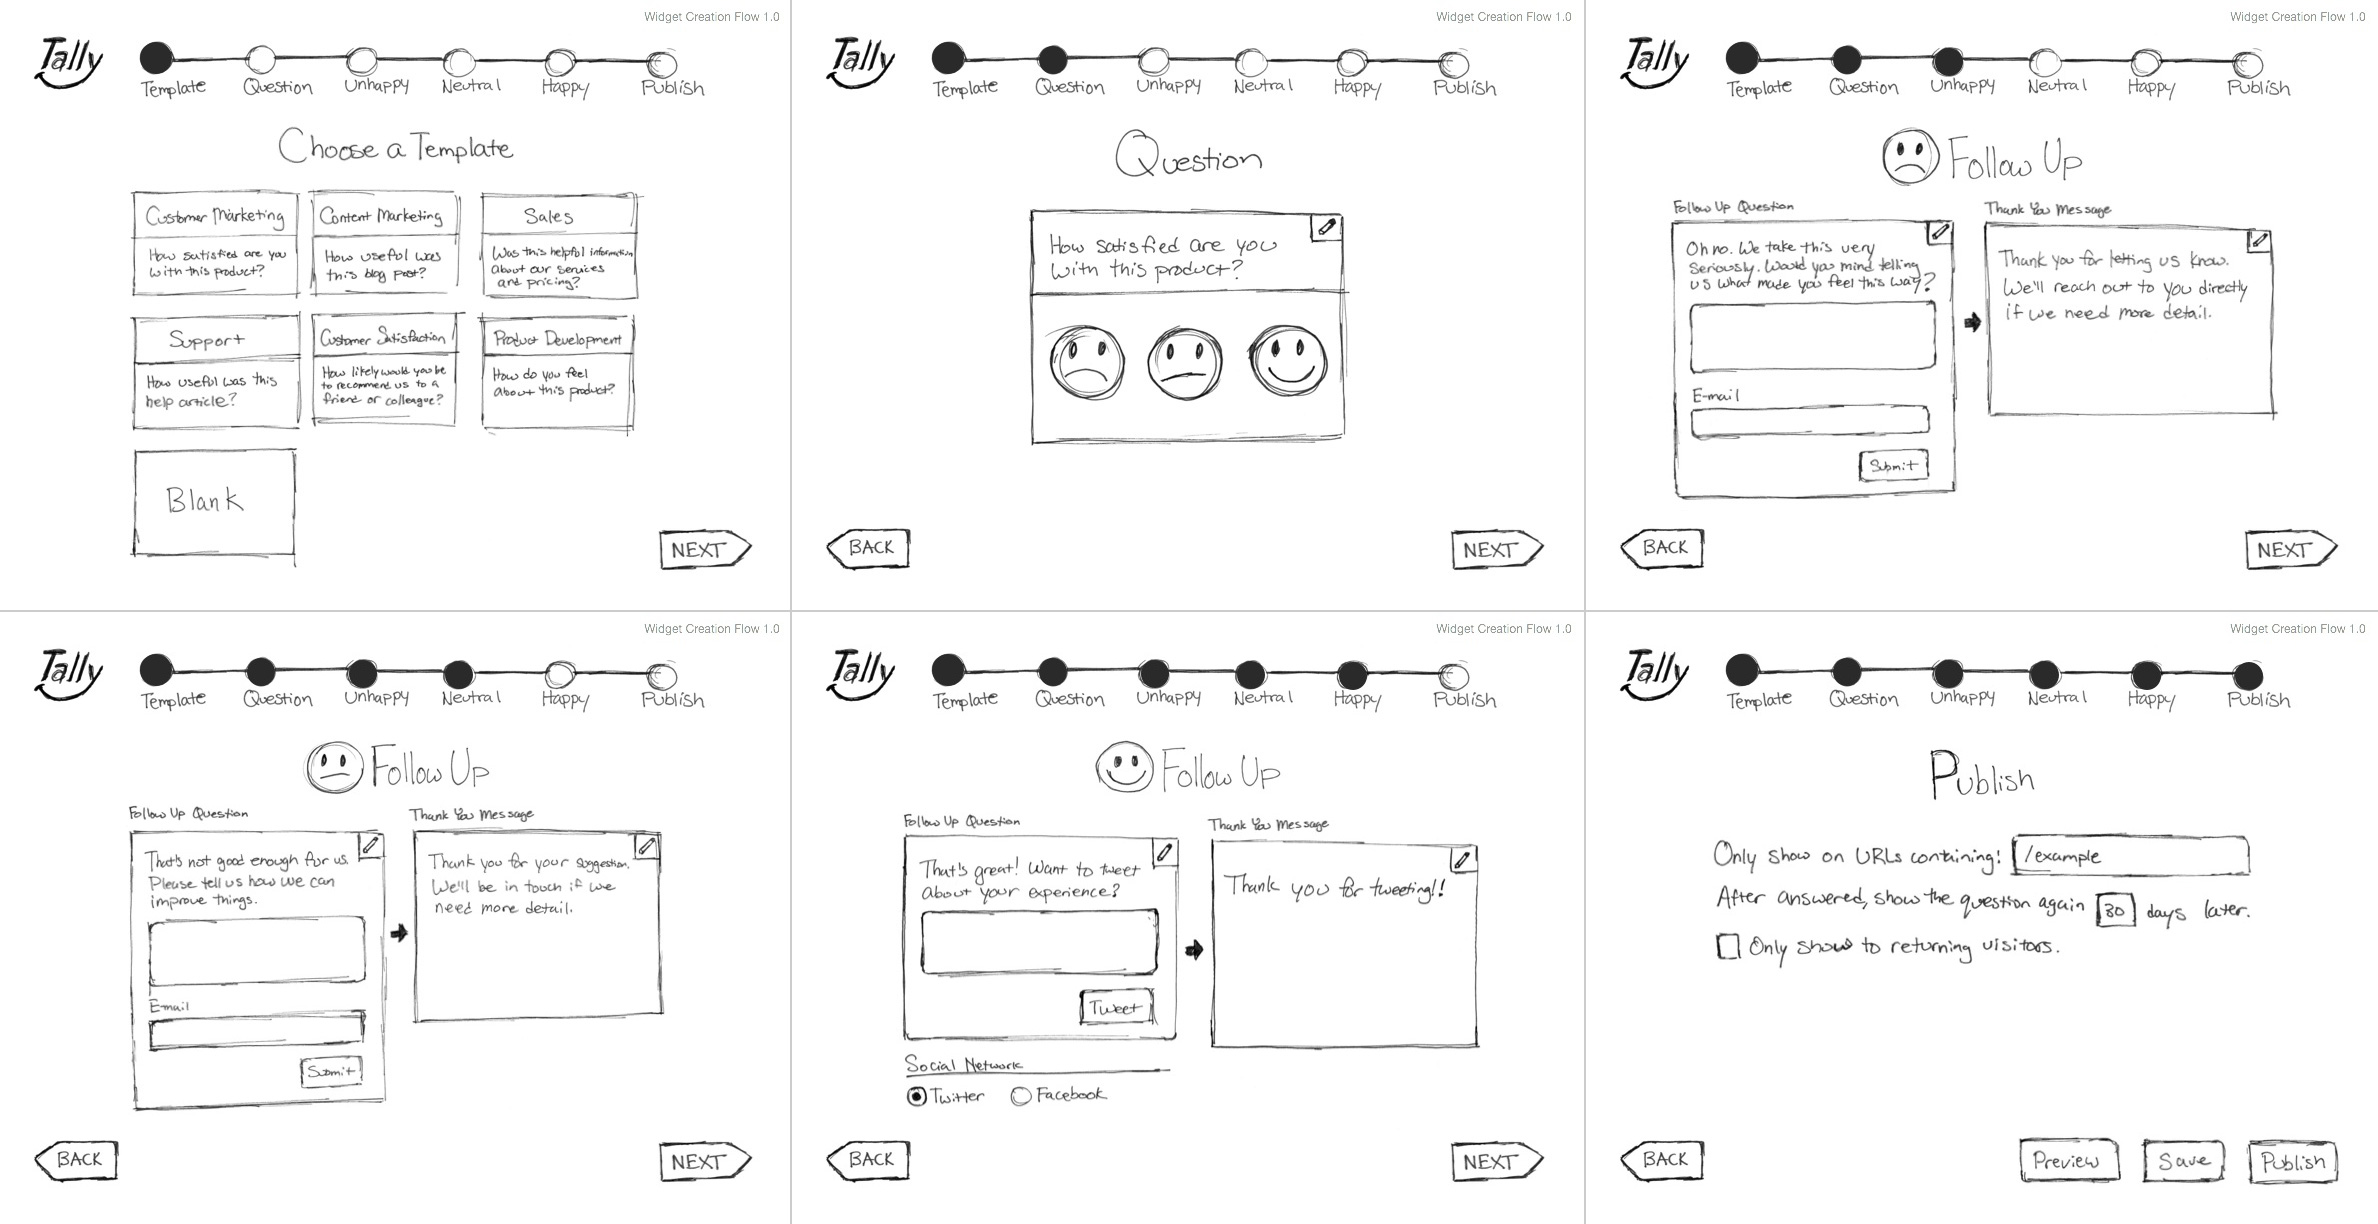 userexperience_sketches